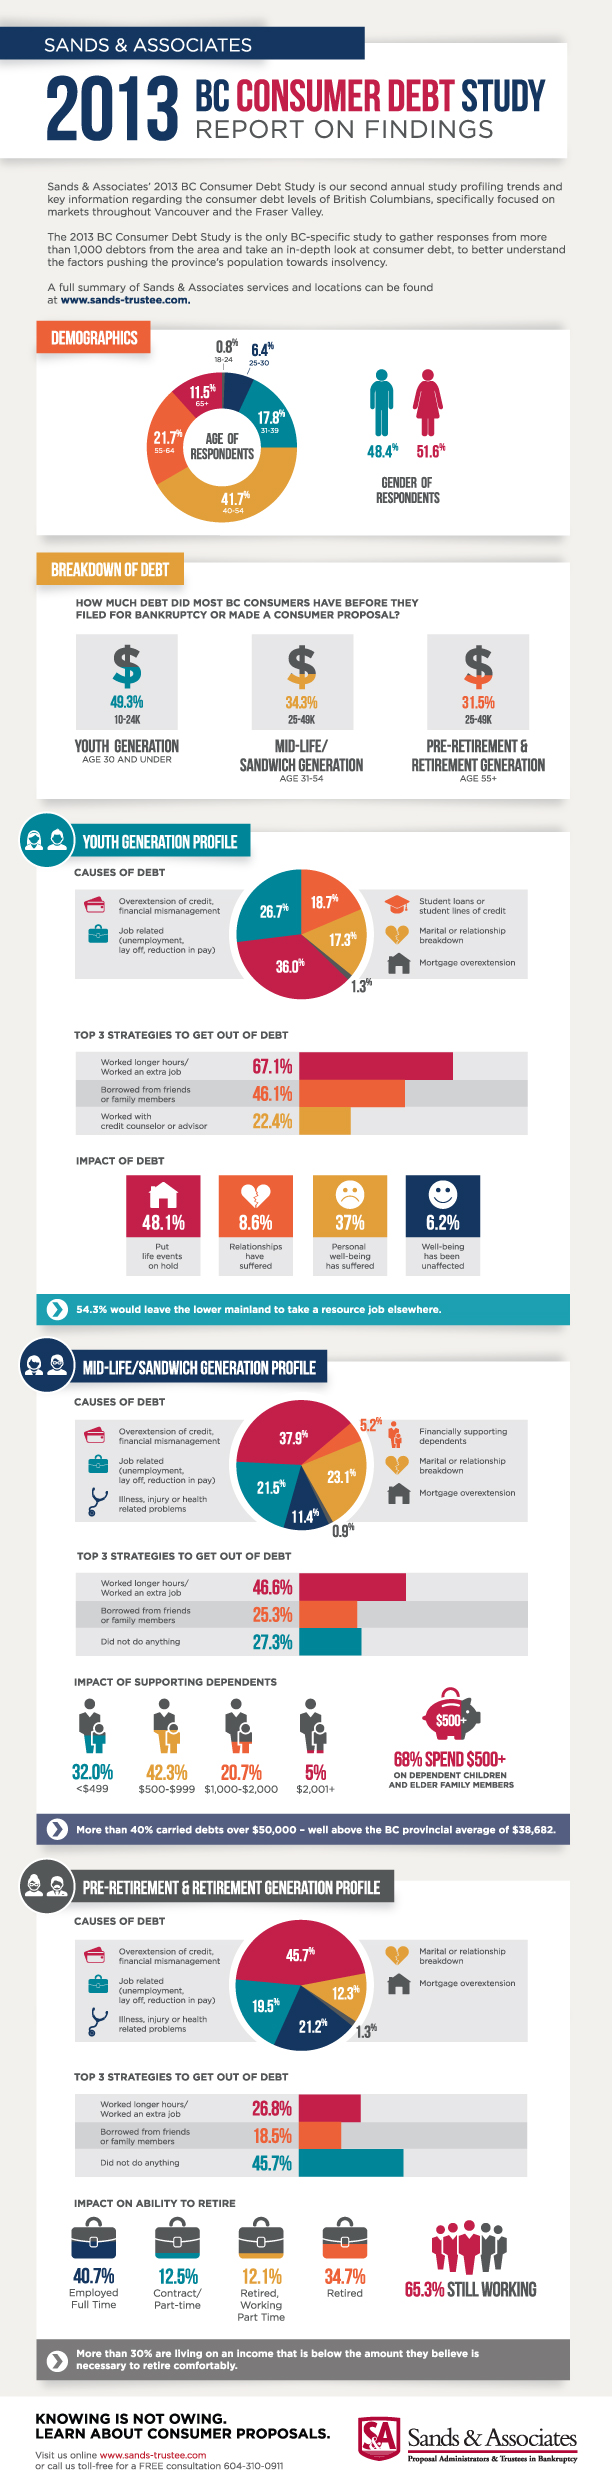 Sands & Associates 2013 BC Consumer Debt Study Infographic